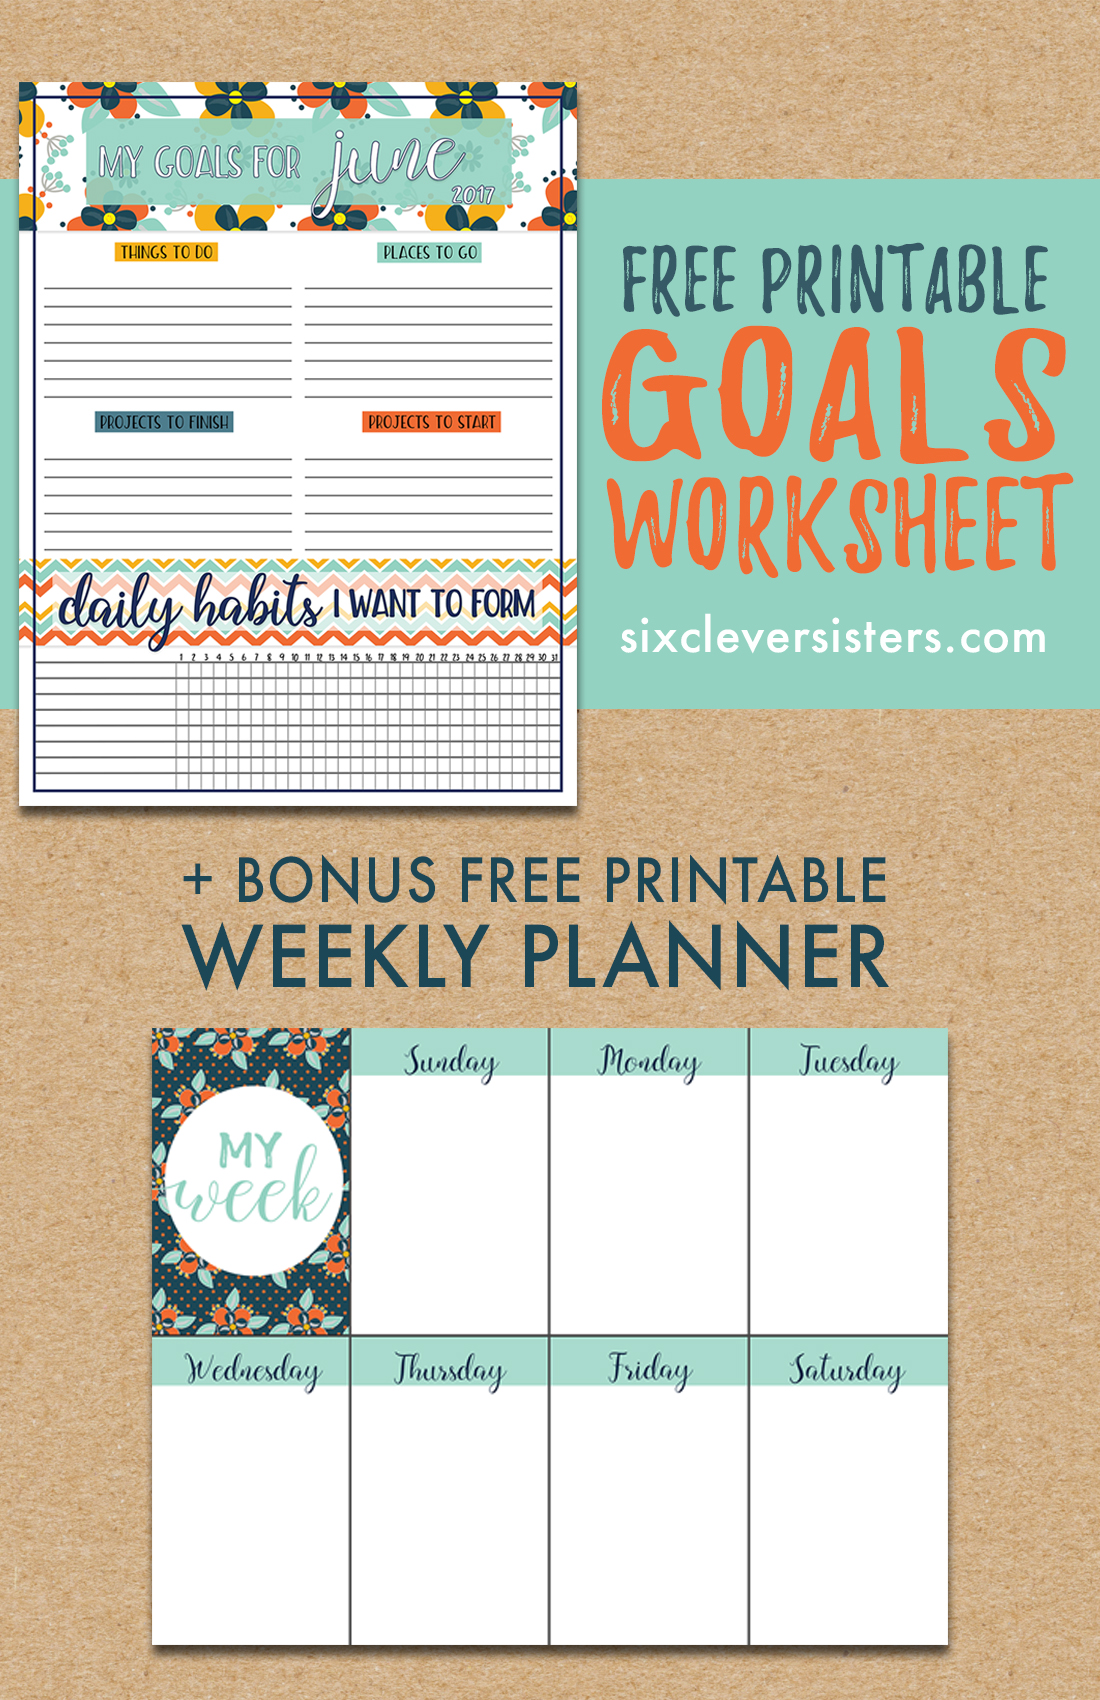 FREE DOWNLOAD Goals Worksheet Printable – Goals Worksheet